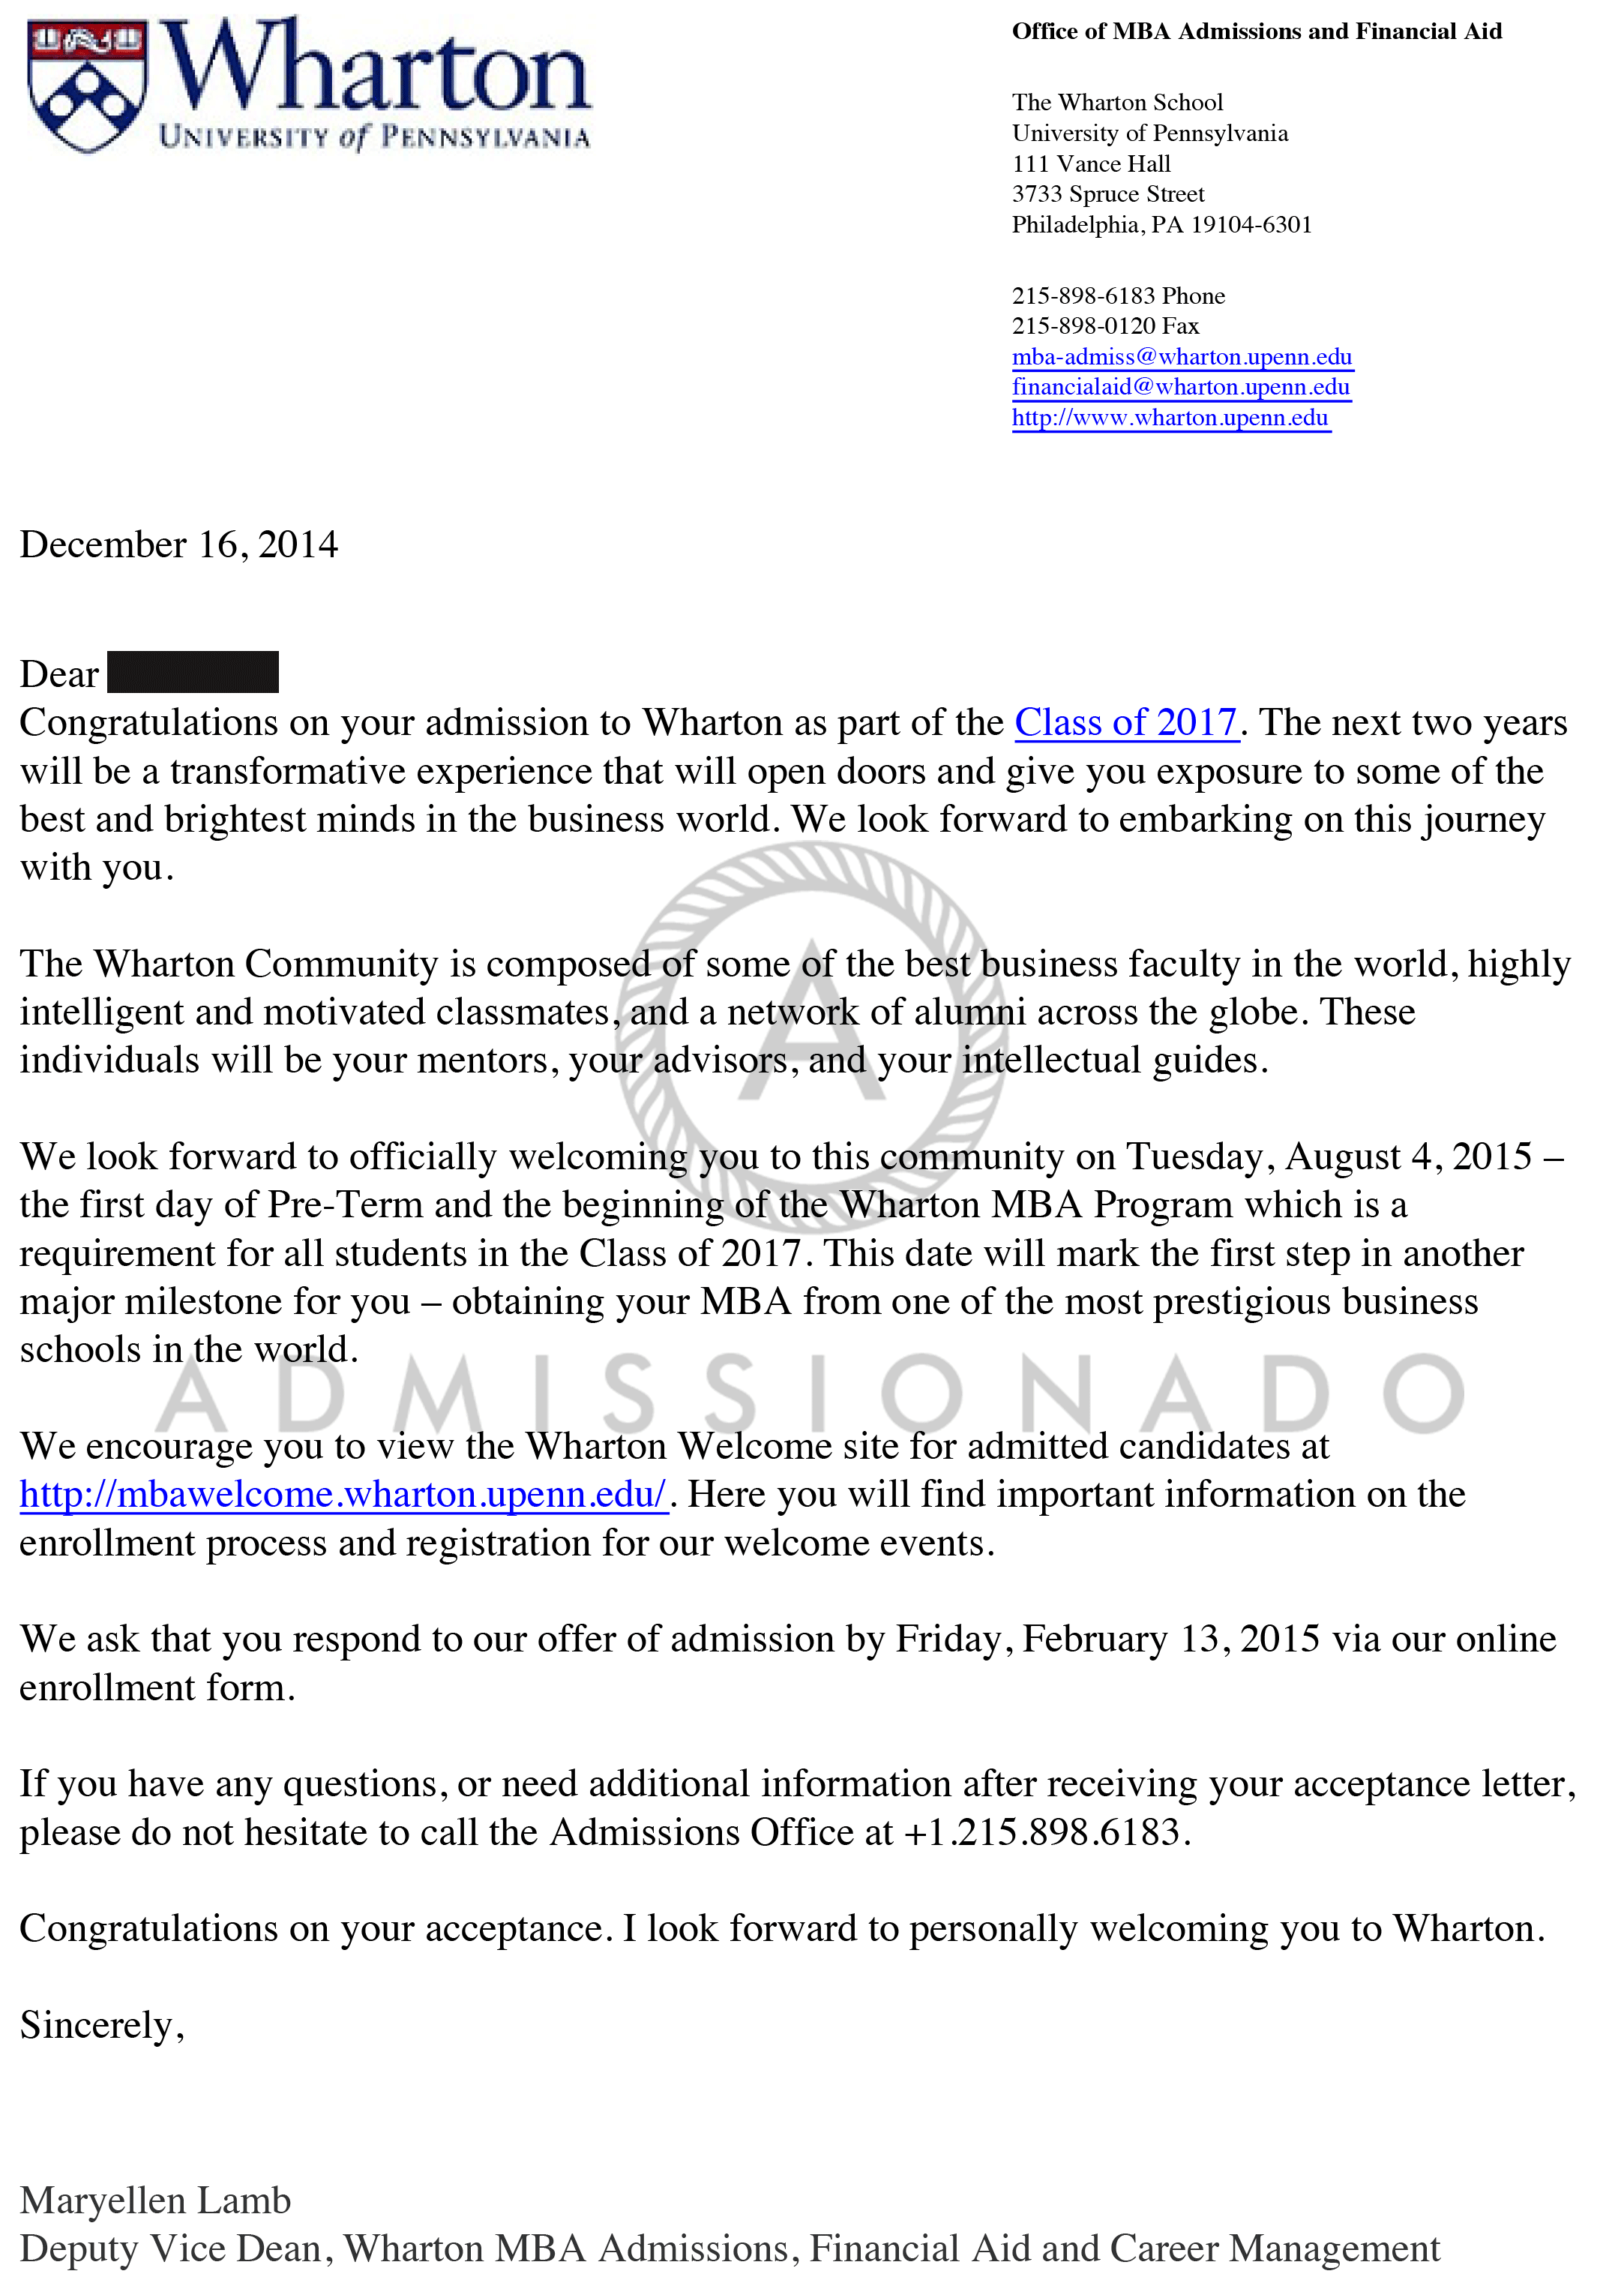 002 Accepted Stanford Application Essay Custom Paper Help Pin